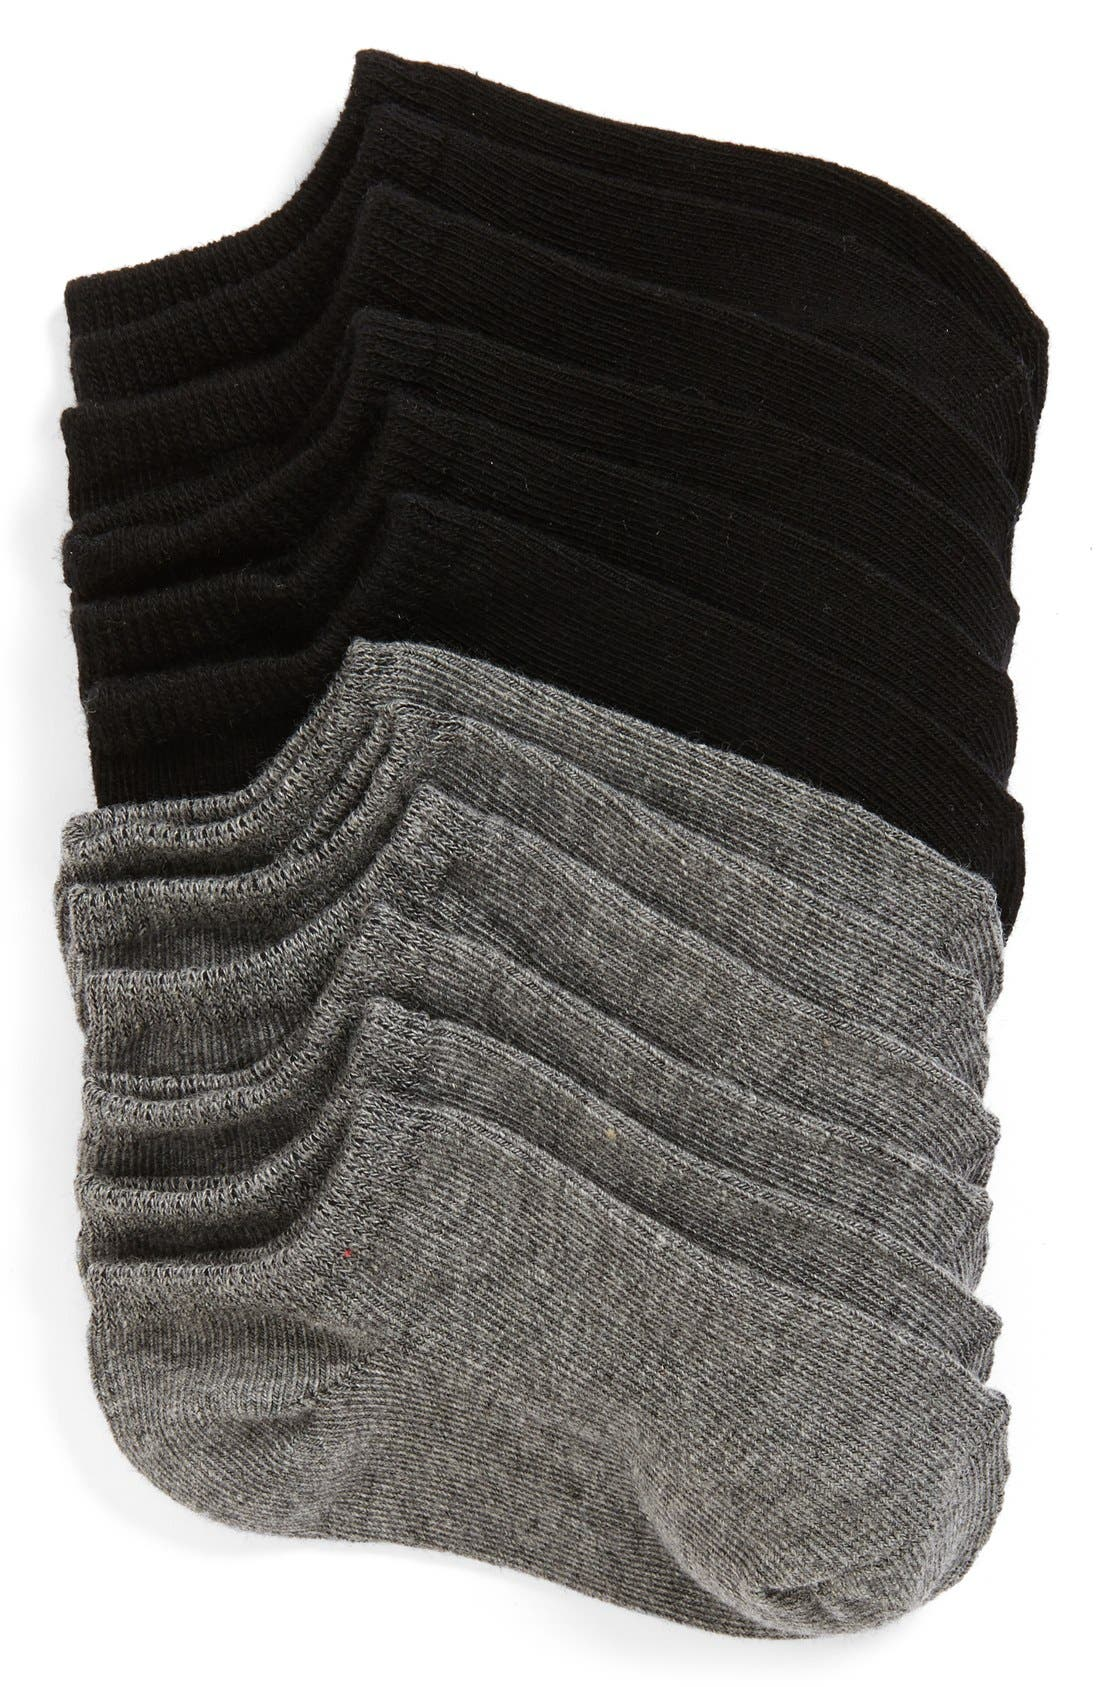 Alternate Image 1 Selected - Nordstrom 6-Pack Sock Liners (Baby, Walker, Toddler, Little Kid & Big Kid)